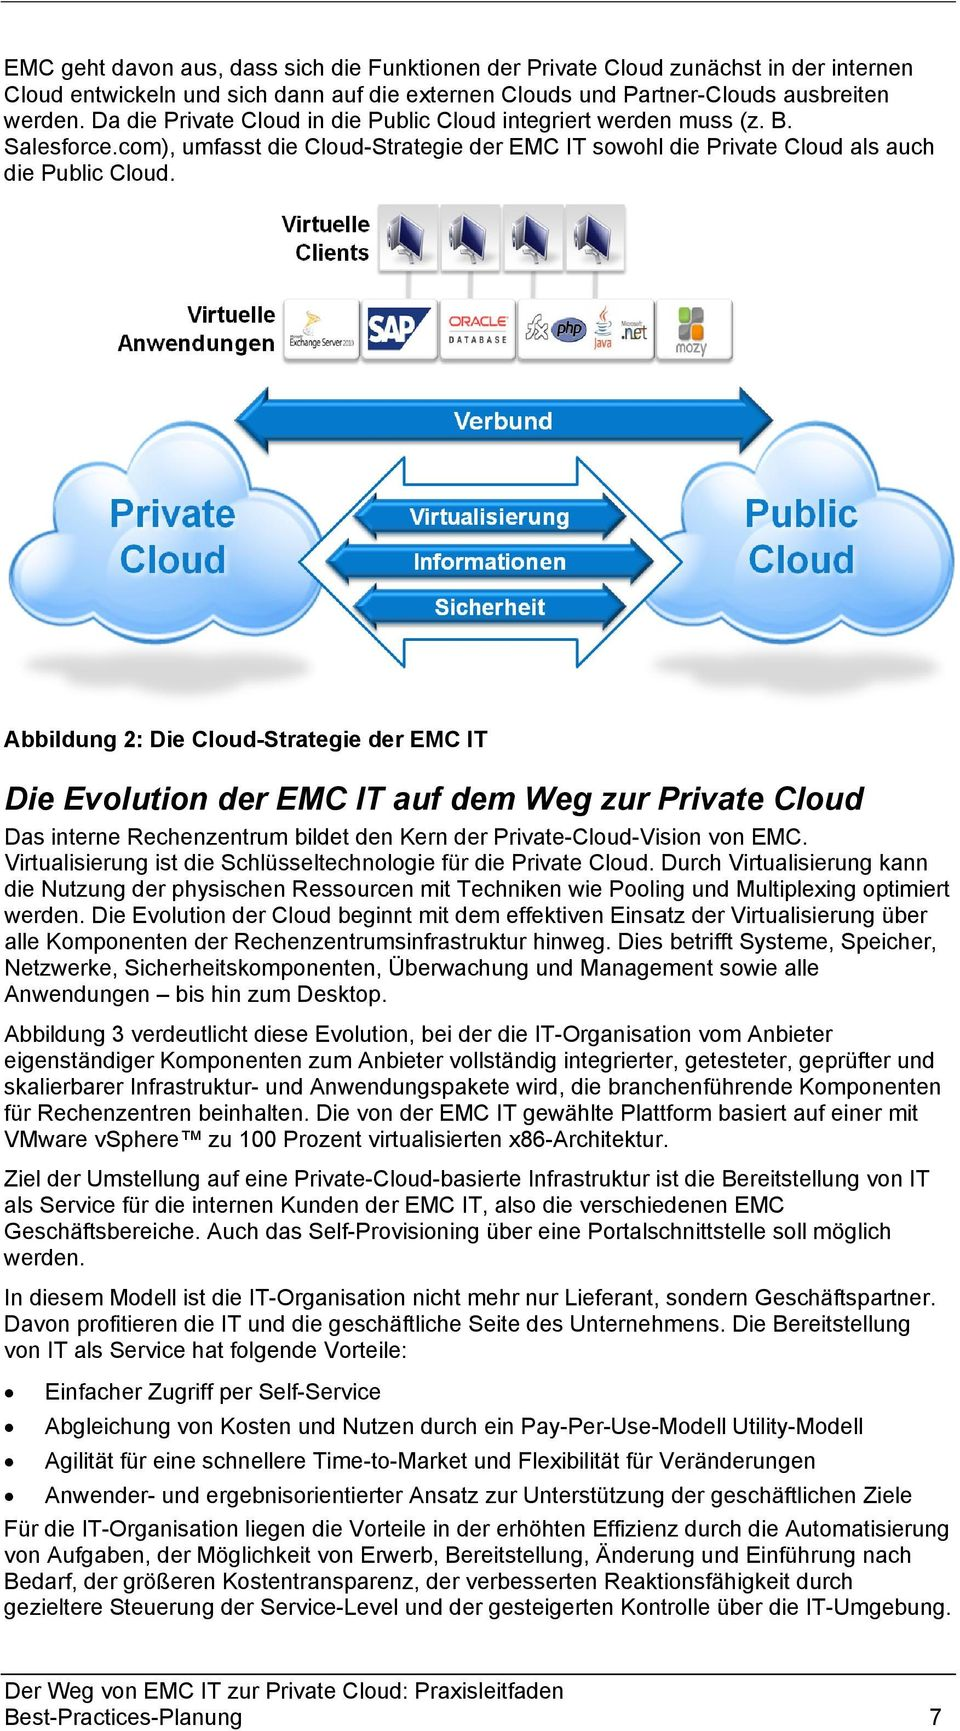 Abbildung 2: Die Cloud-Strategie der EMC IT Die Evolution der EMC IT auf dem Weg zur Private Cloud Das interne Rechenzentrum bildet den Kern der Private-Cloud-Vision von EMC.